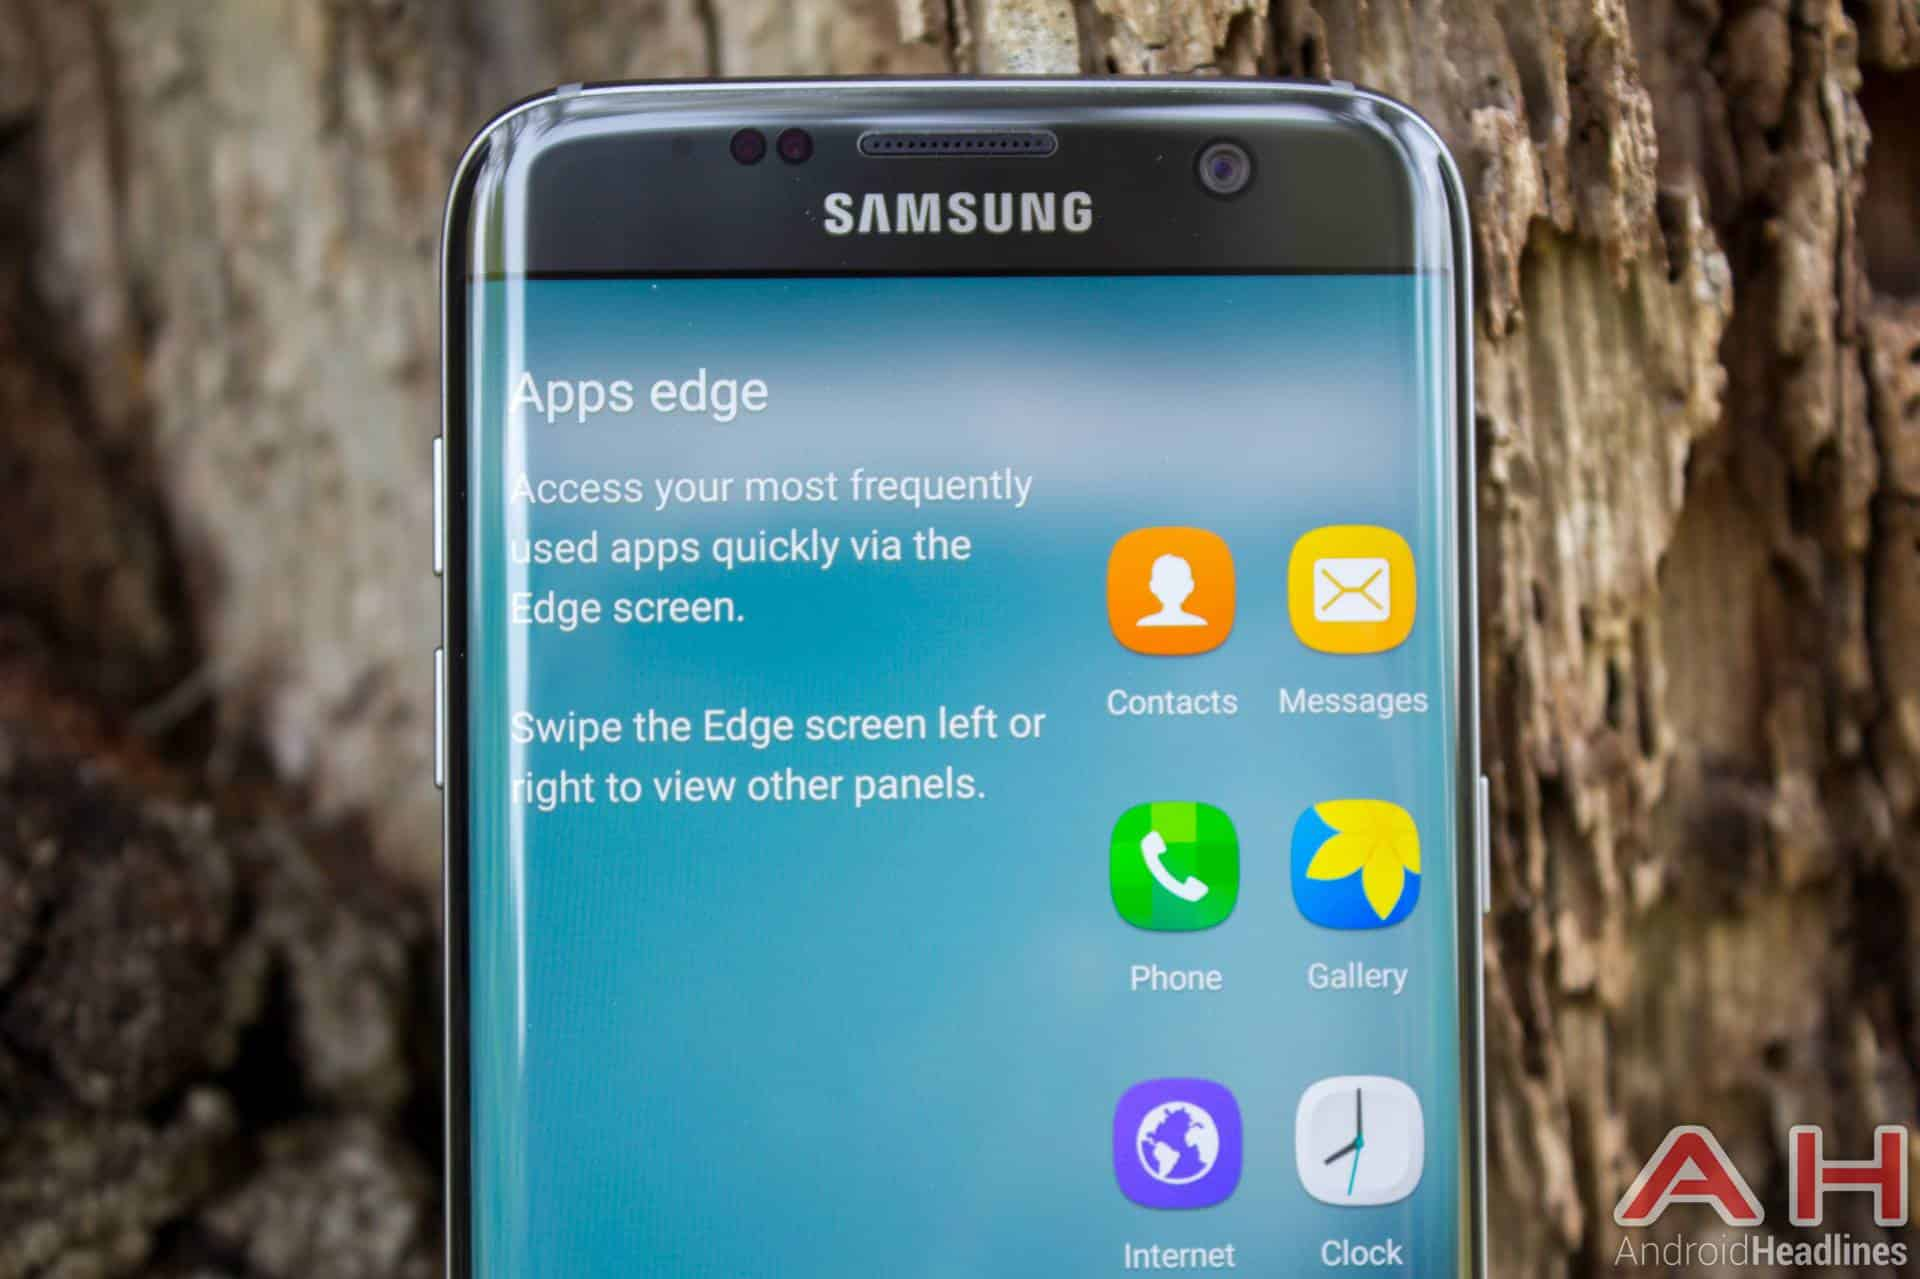 Samsung-Galaxy-S7-Edge-AH-NS-apps-edge